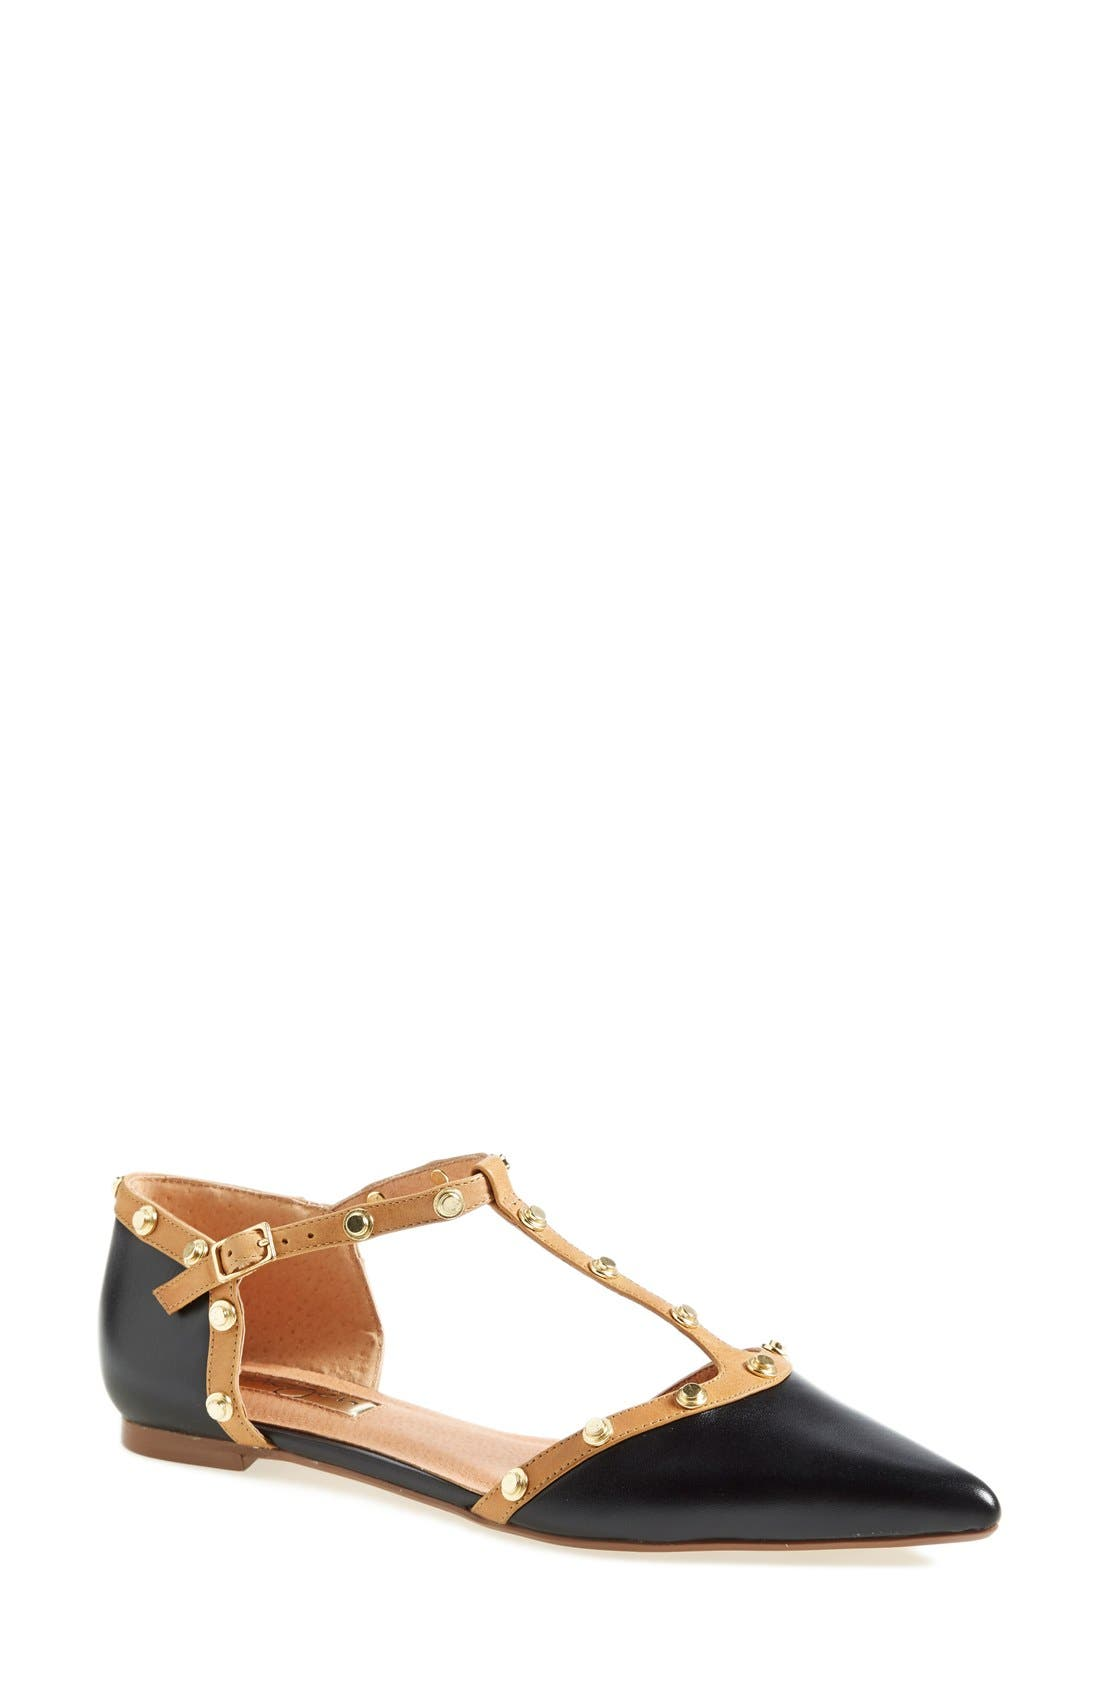 Alternate Image 1 Selected - Halogen® 'Olson' Pointy Toe Studded T-Strap Flat (Women) (Nordstrom Exclusive)